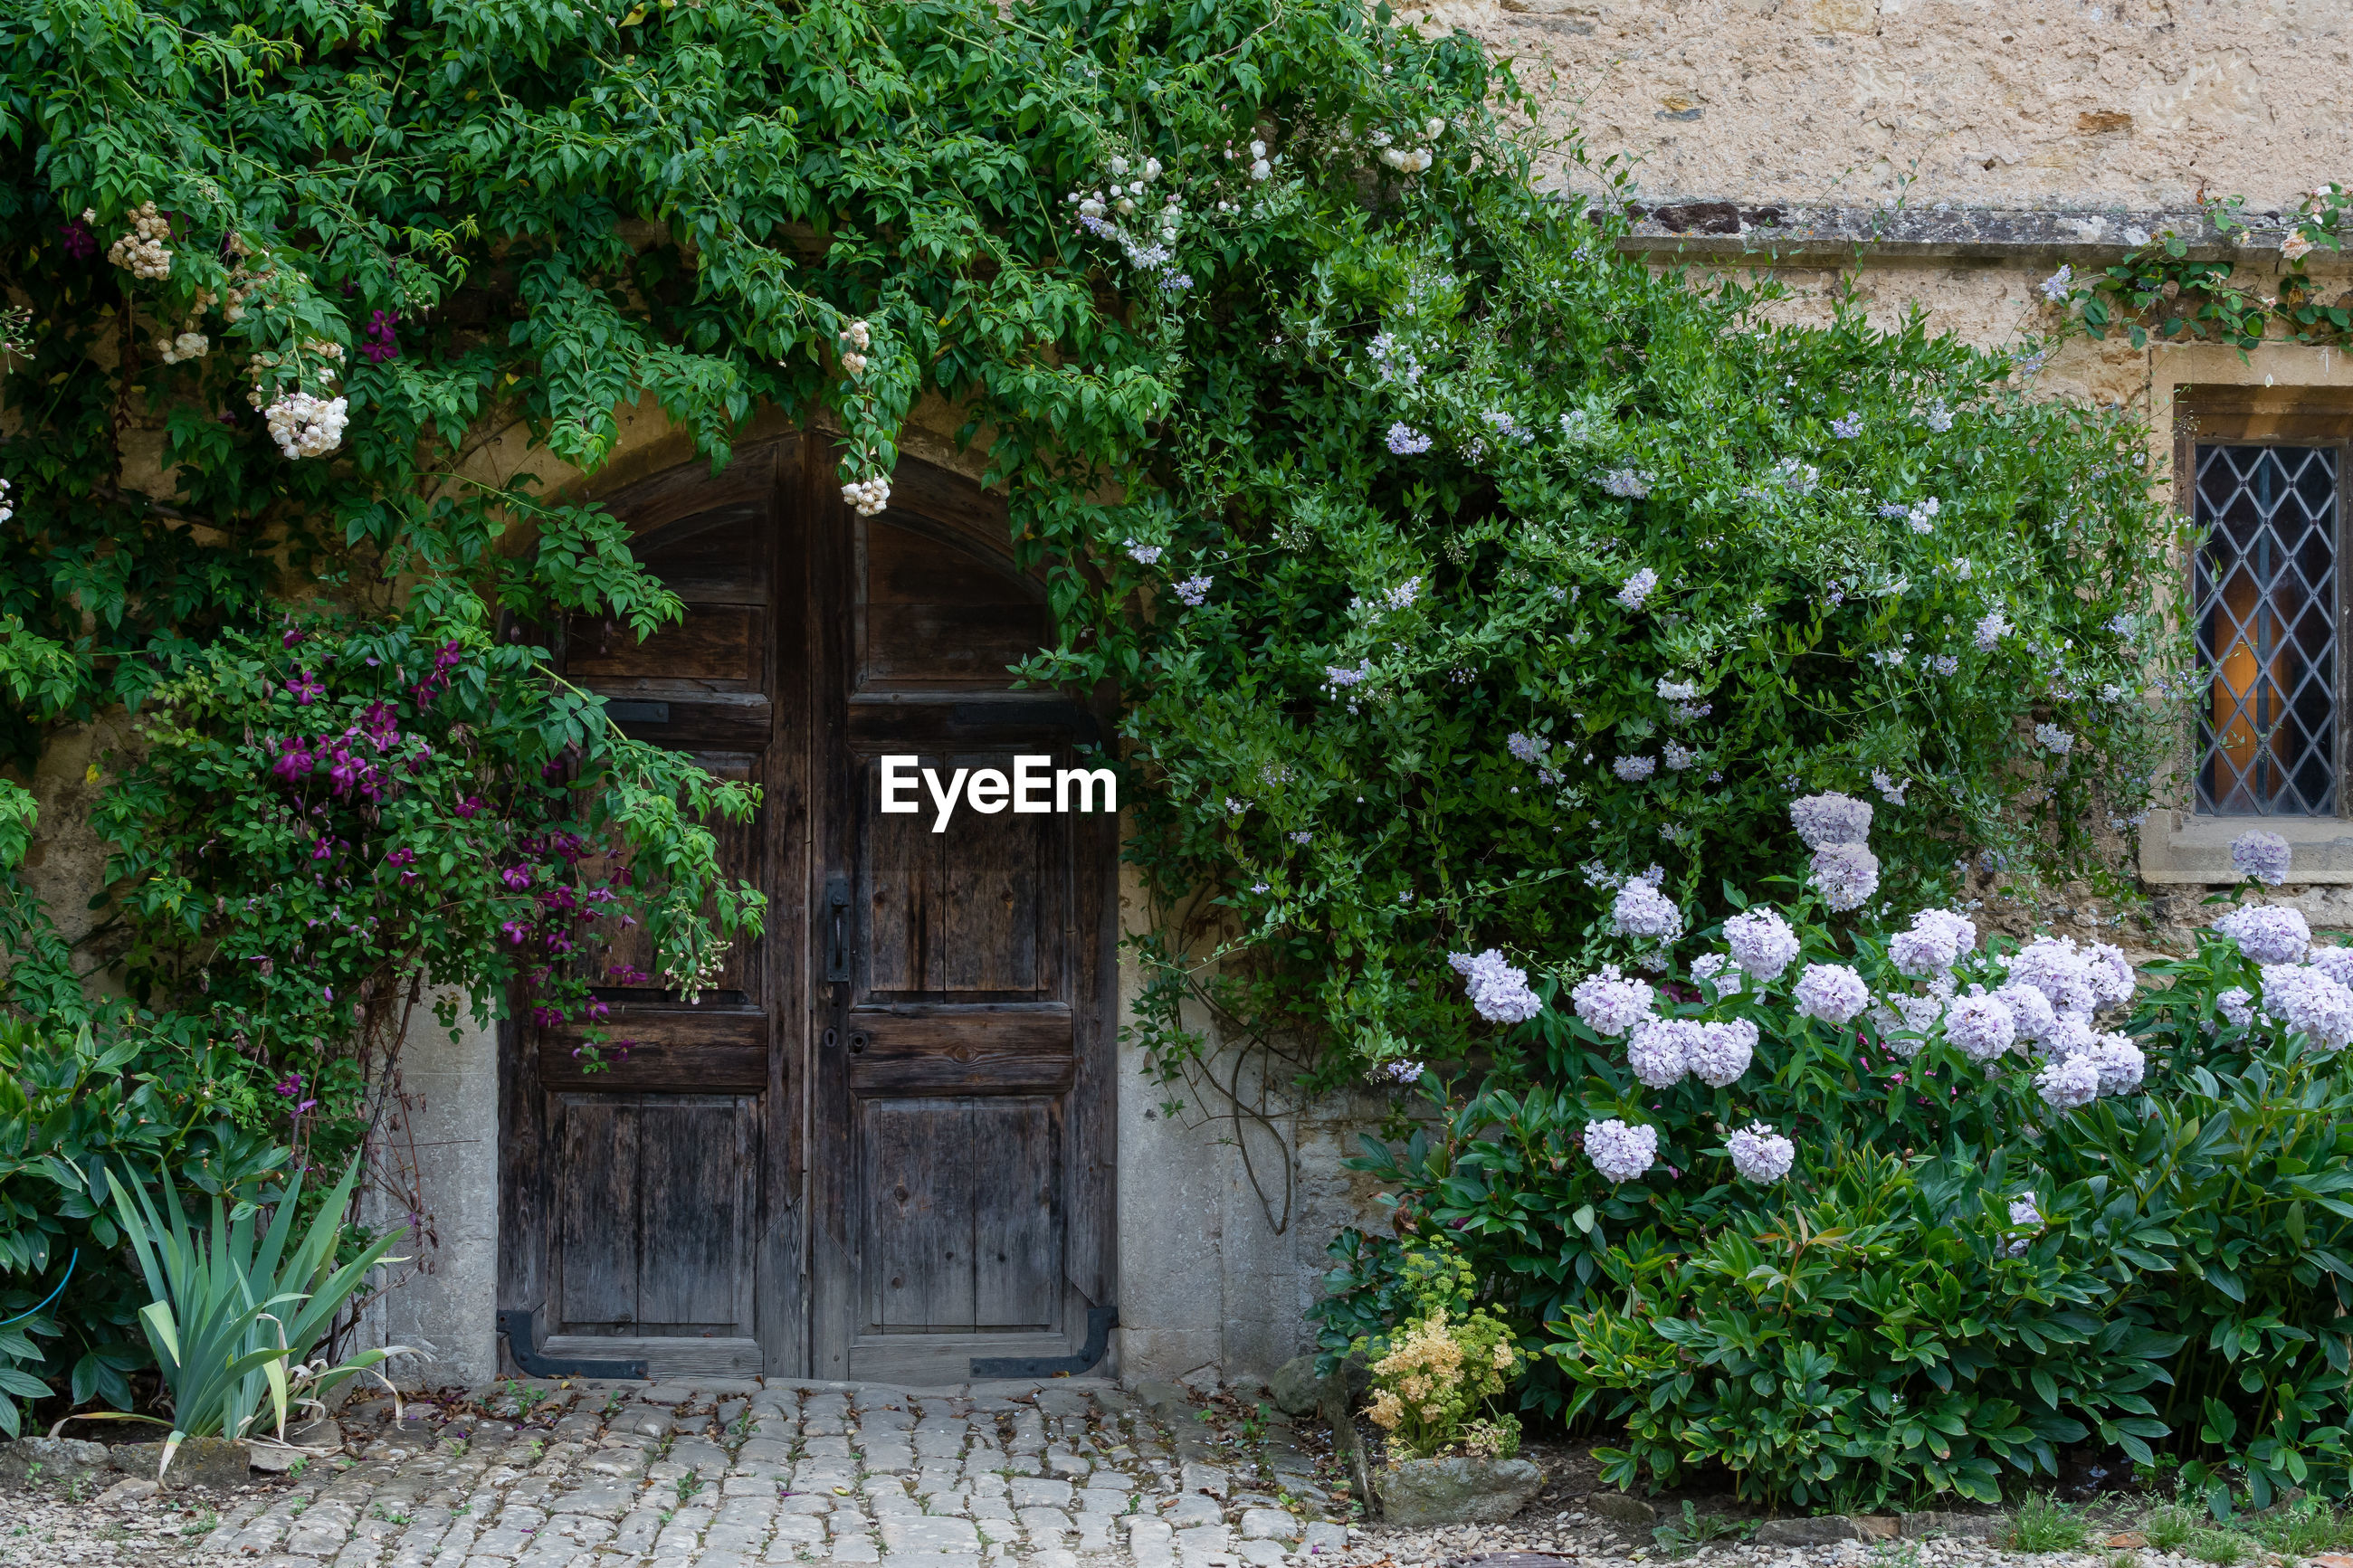 FLOWERING PLANTS AND TREES BY HOUSE